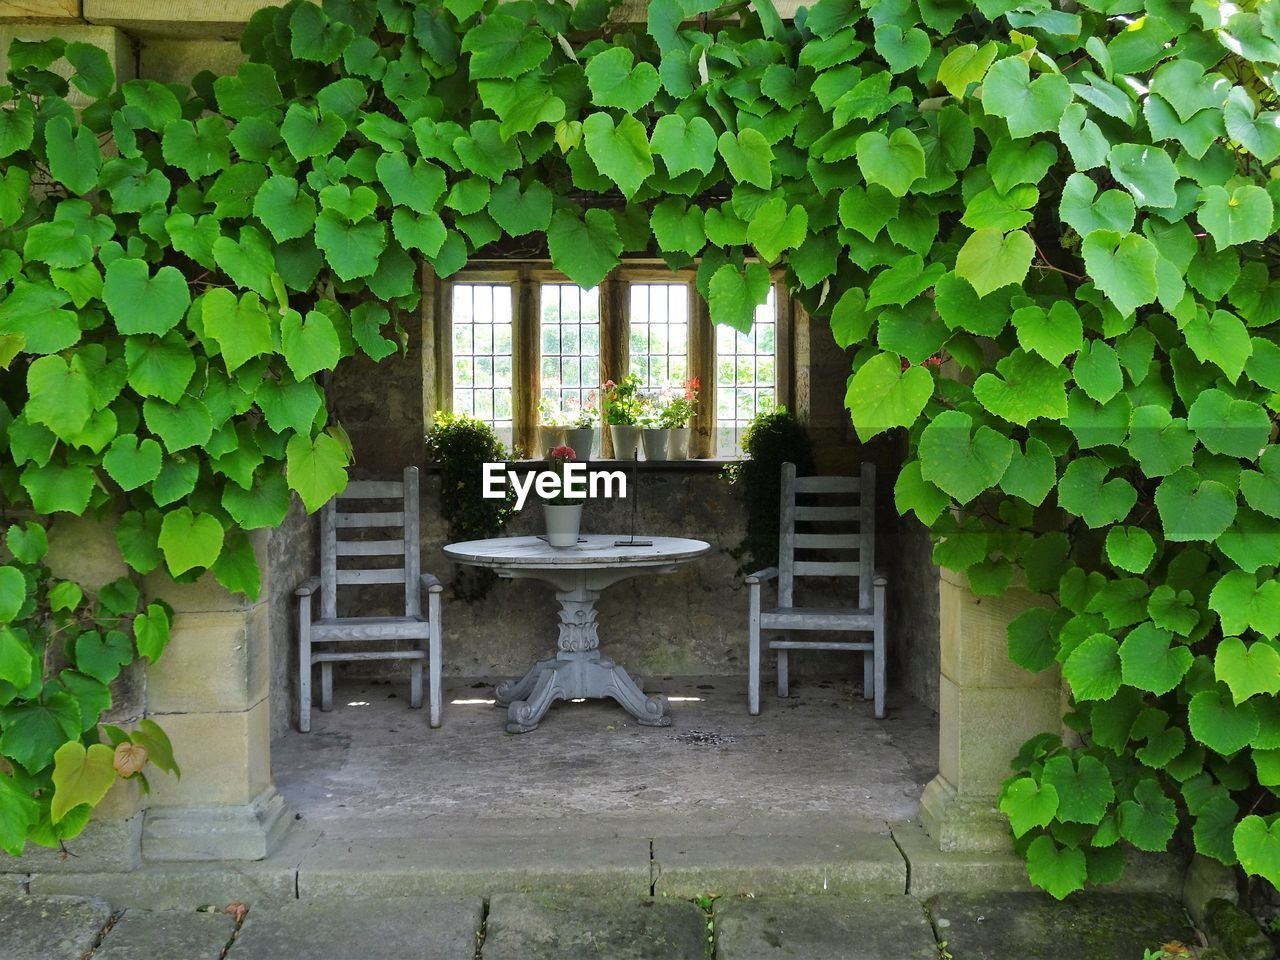 plant, architecture, leaf, plant part, built structure, no people, building, growth, seat, nature, day, green color, window, outdoors, ivy, house, building exterior, foliage, lush foliage, wall - building feature, hedge